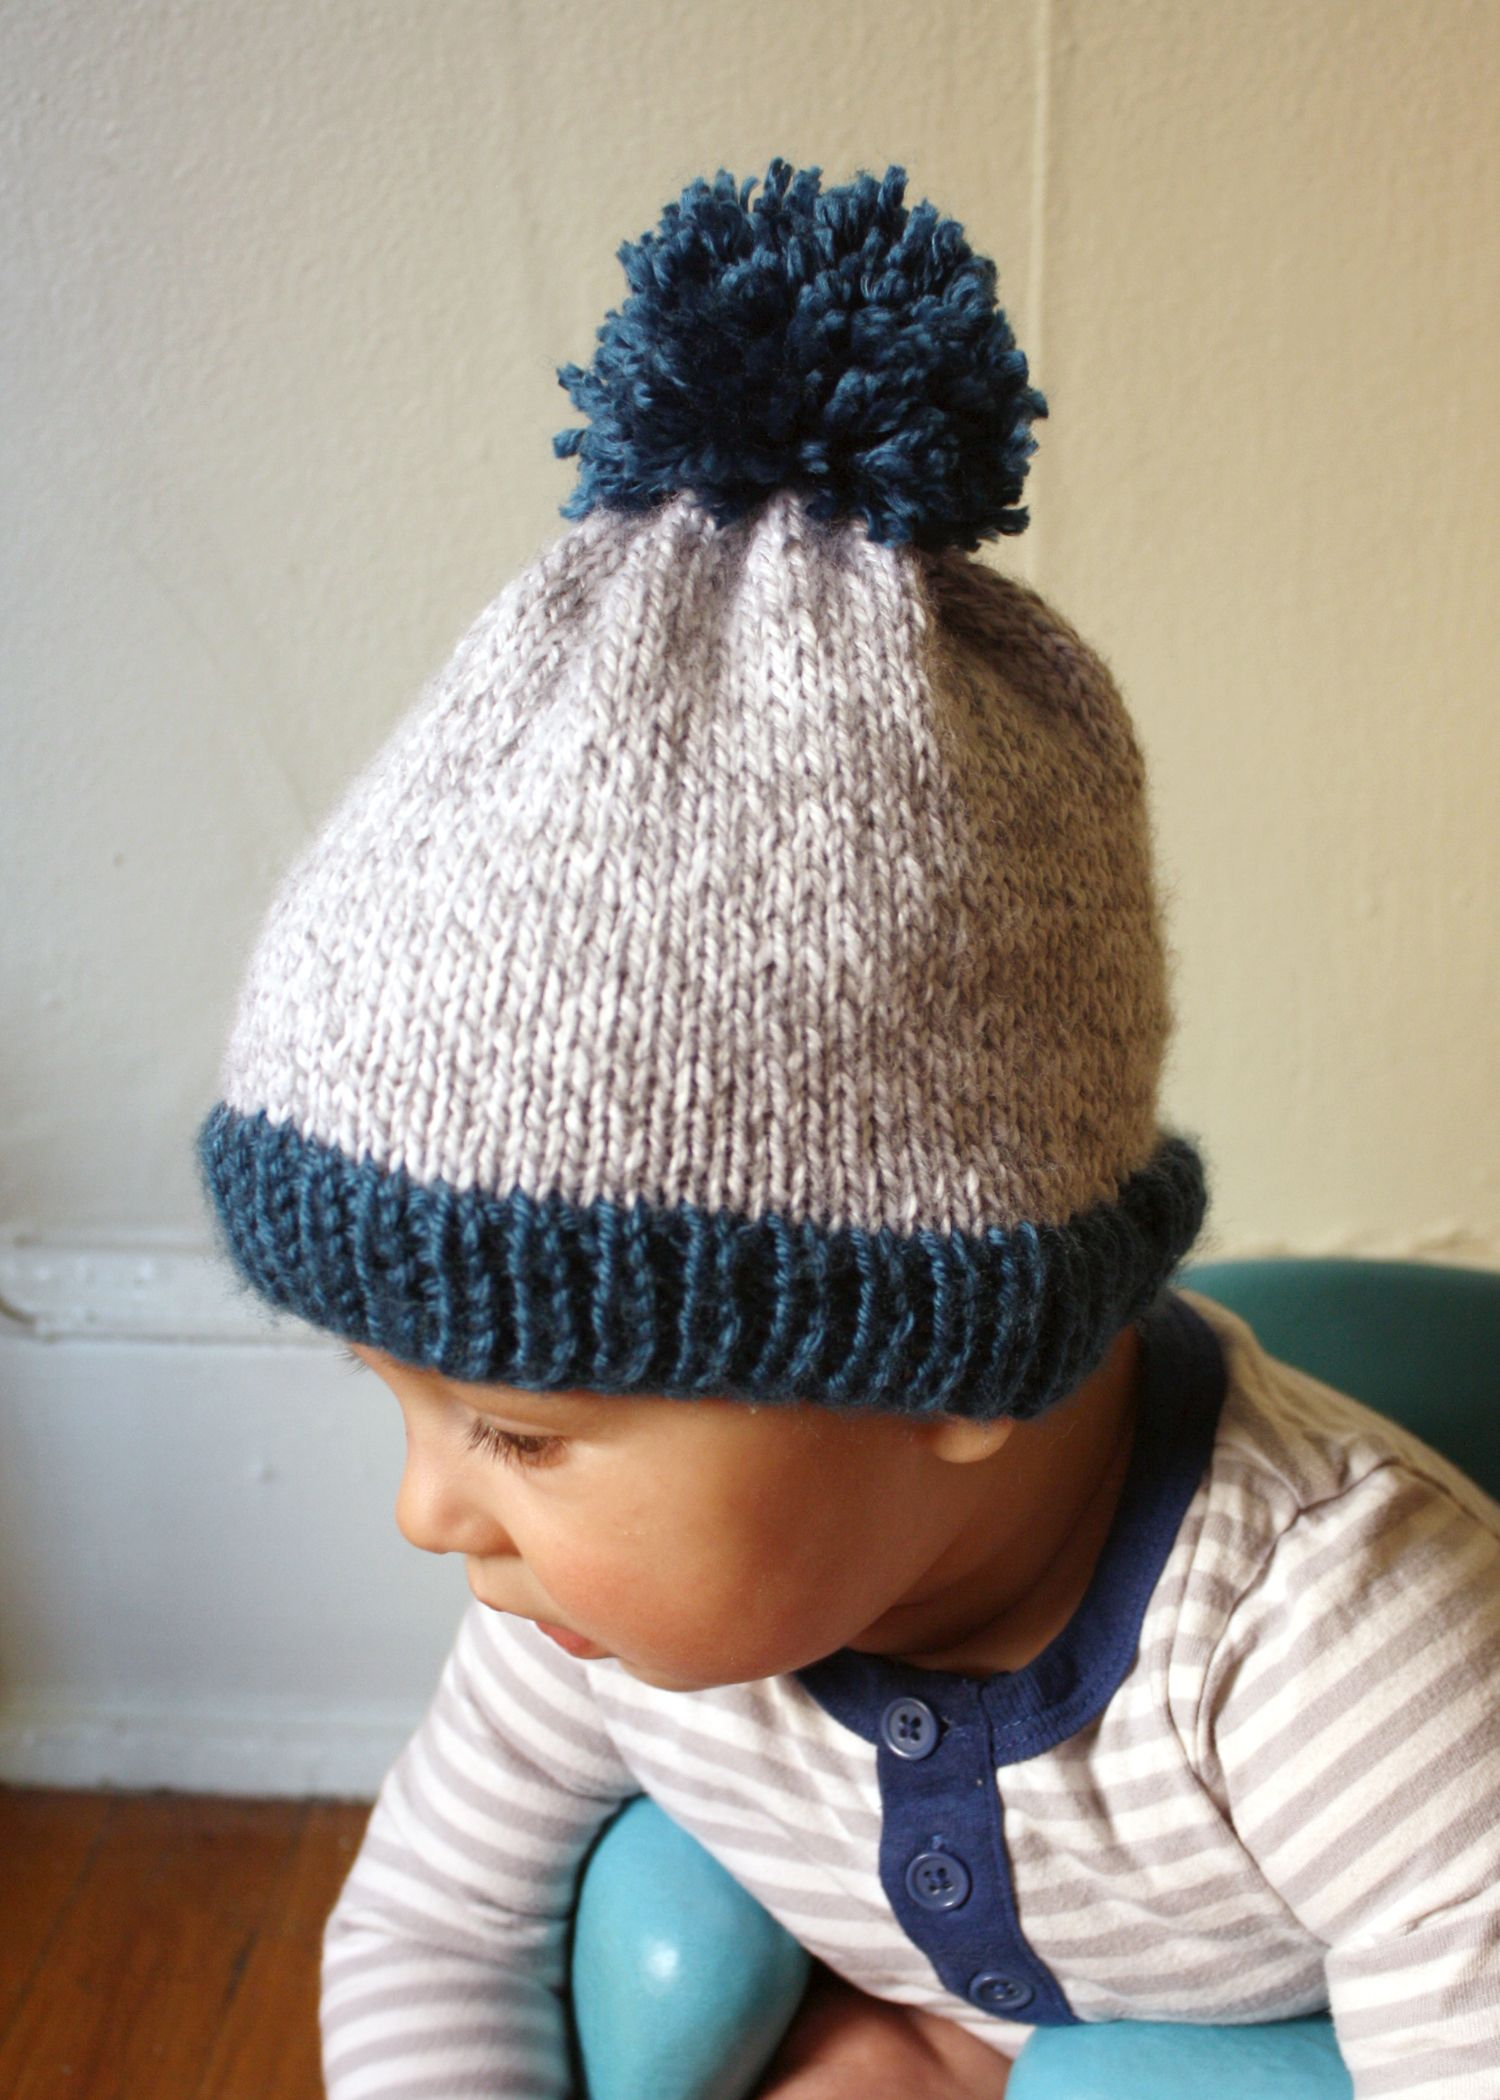 Big Pom Baby Beanie - Now With Free PDF Pattern!    Michael Ann Made ... 3d34cd3b899